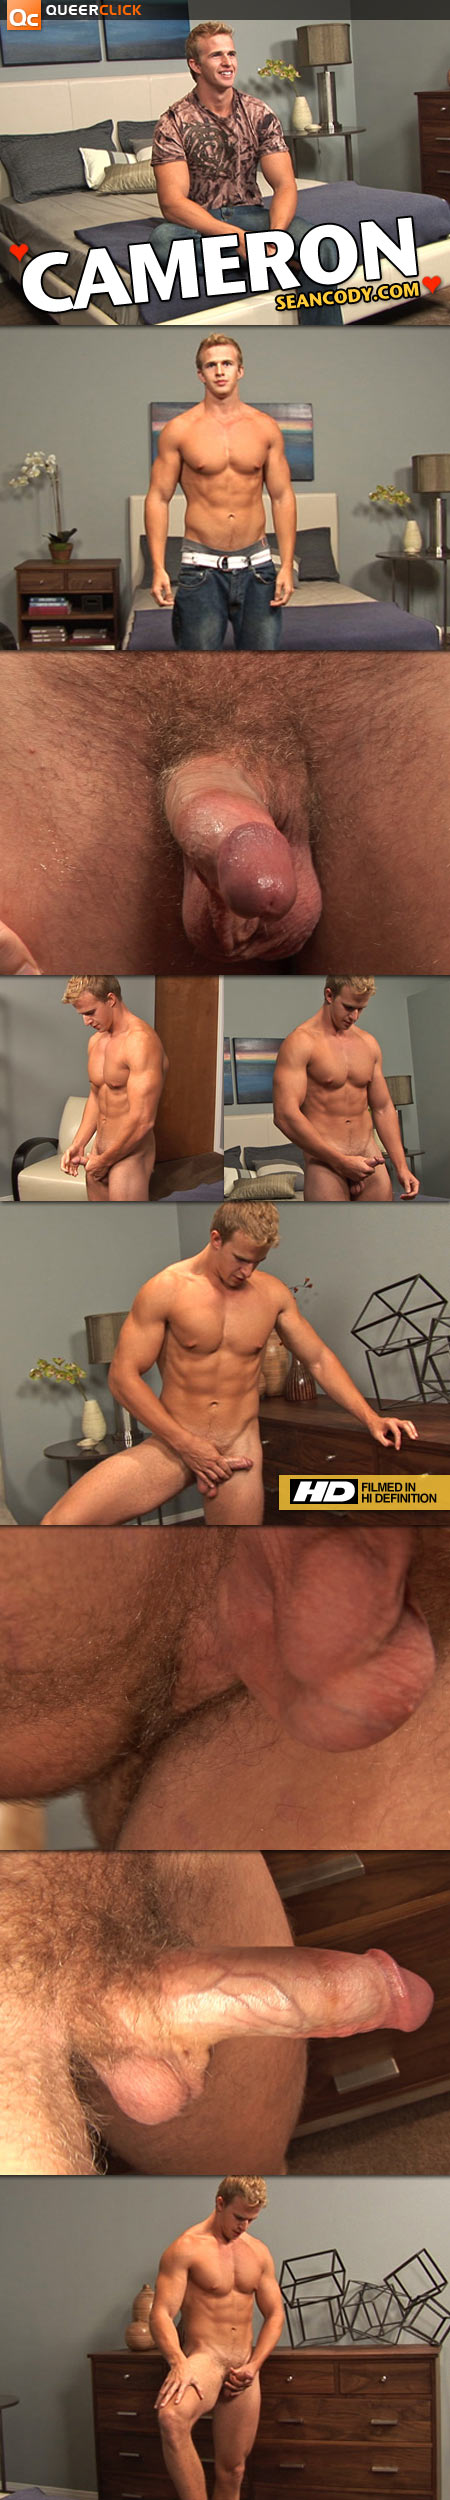 Sean Cody: Cameron